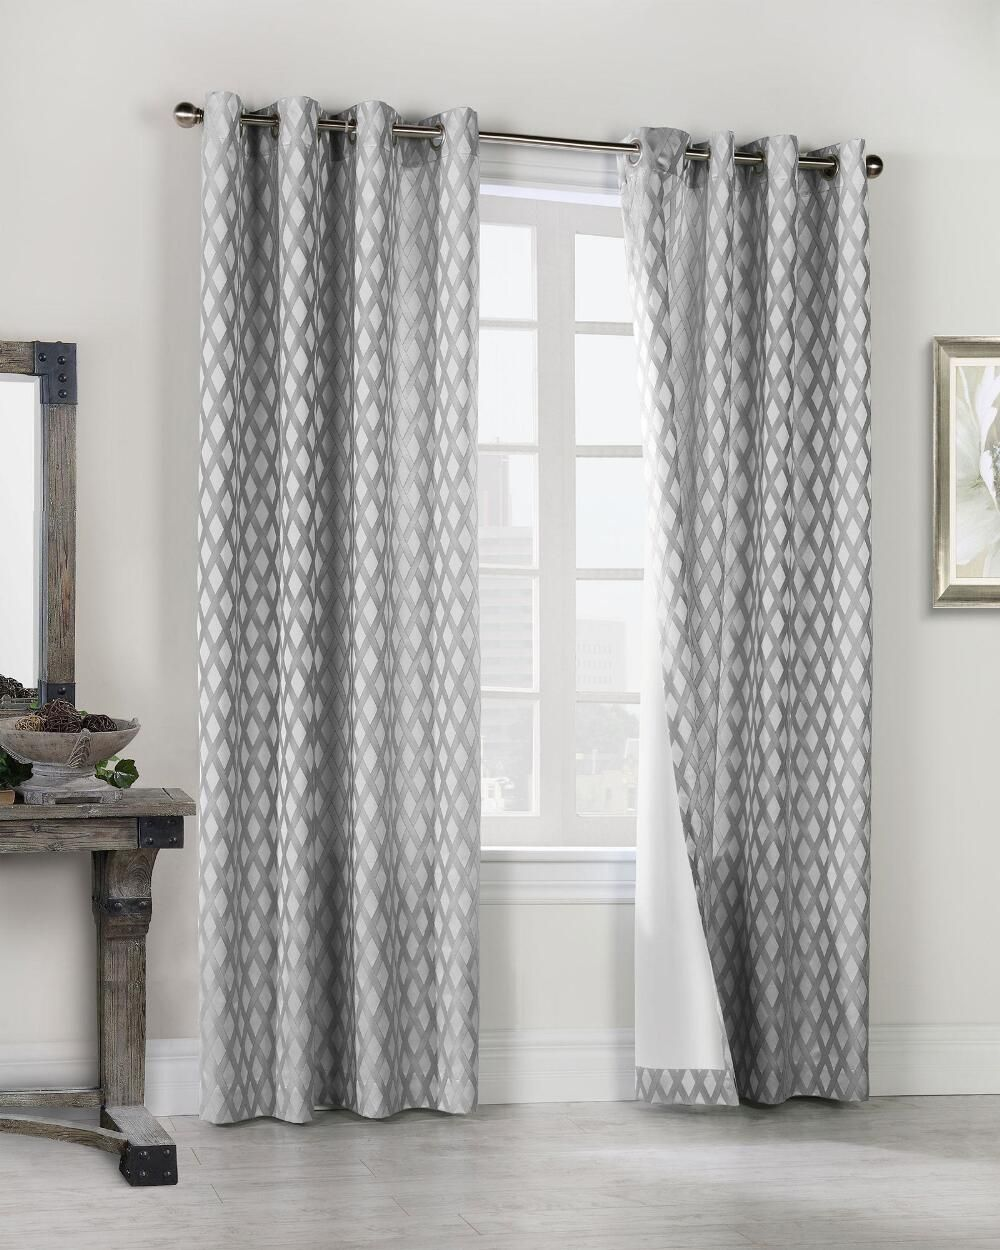 Commonwealth Criss Cross Woven Jacquard Curtain Panel